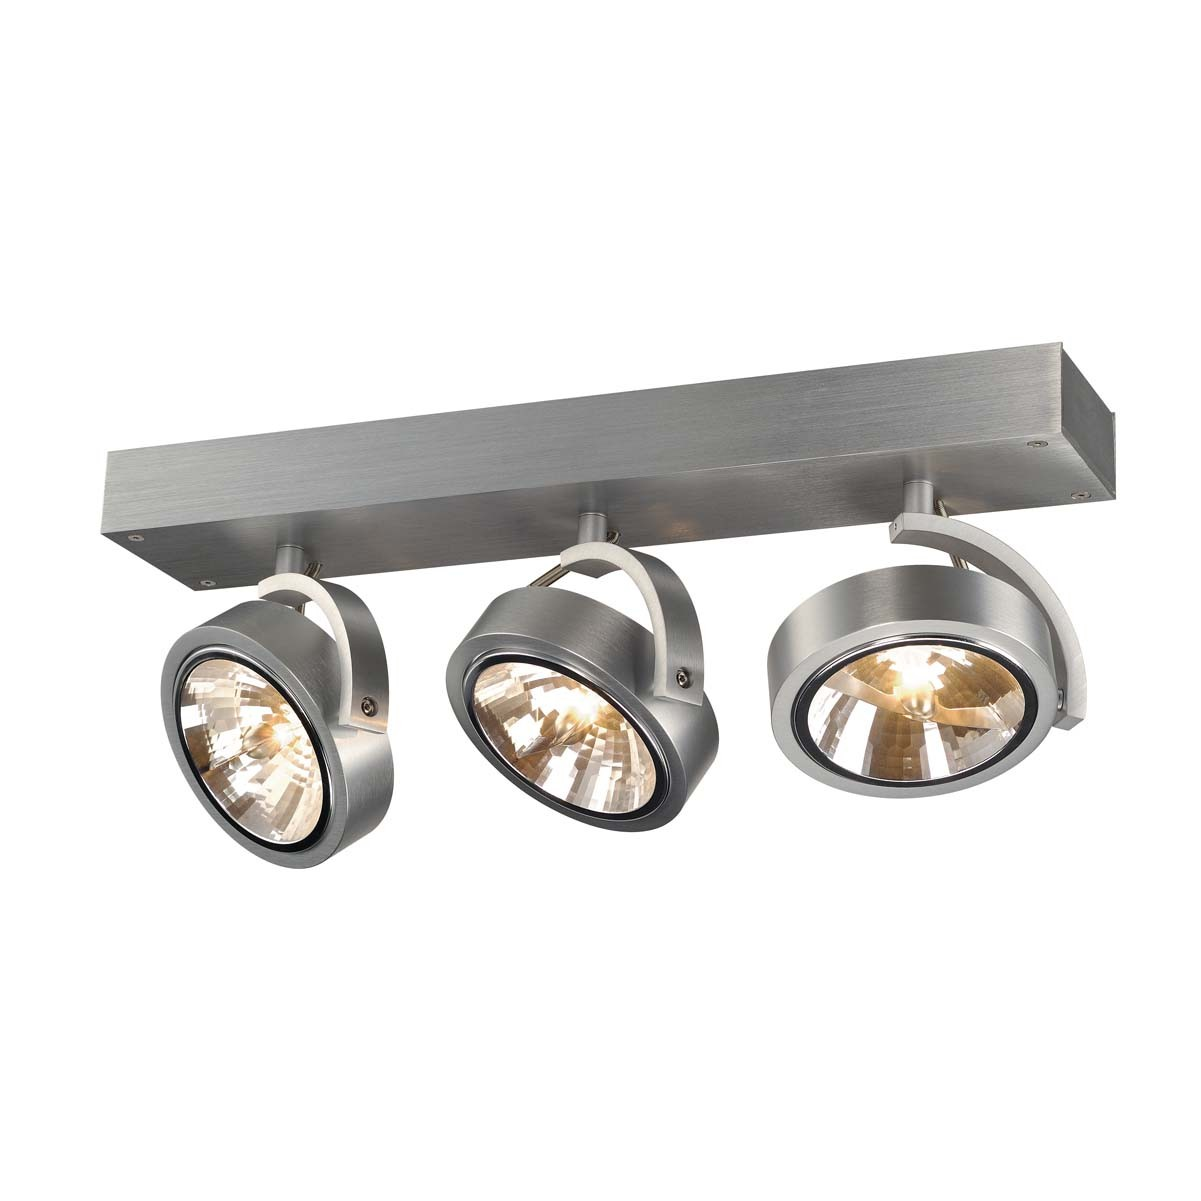 SLV 147276 Kalu 3 3x50W Brushed Aluminium Ceiling & Wall Light